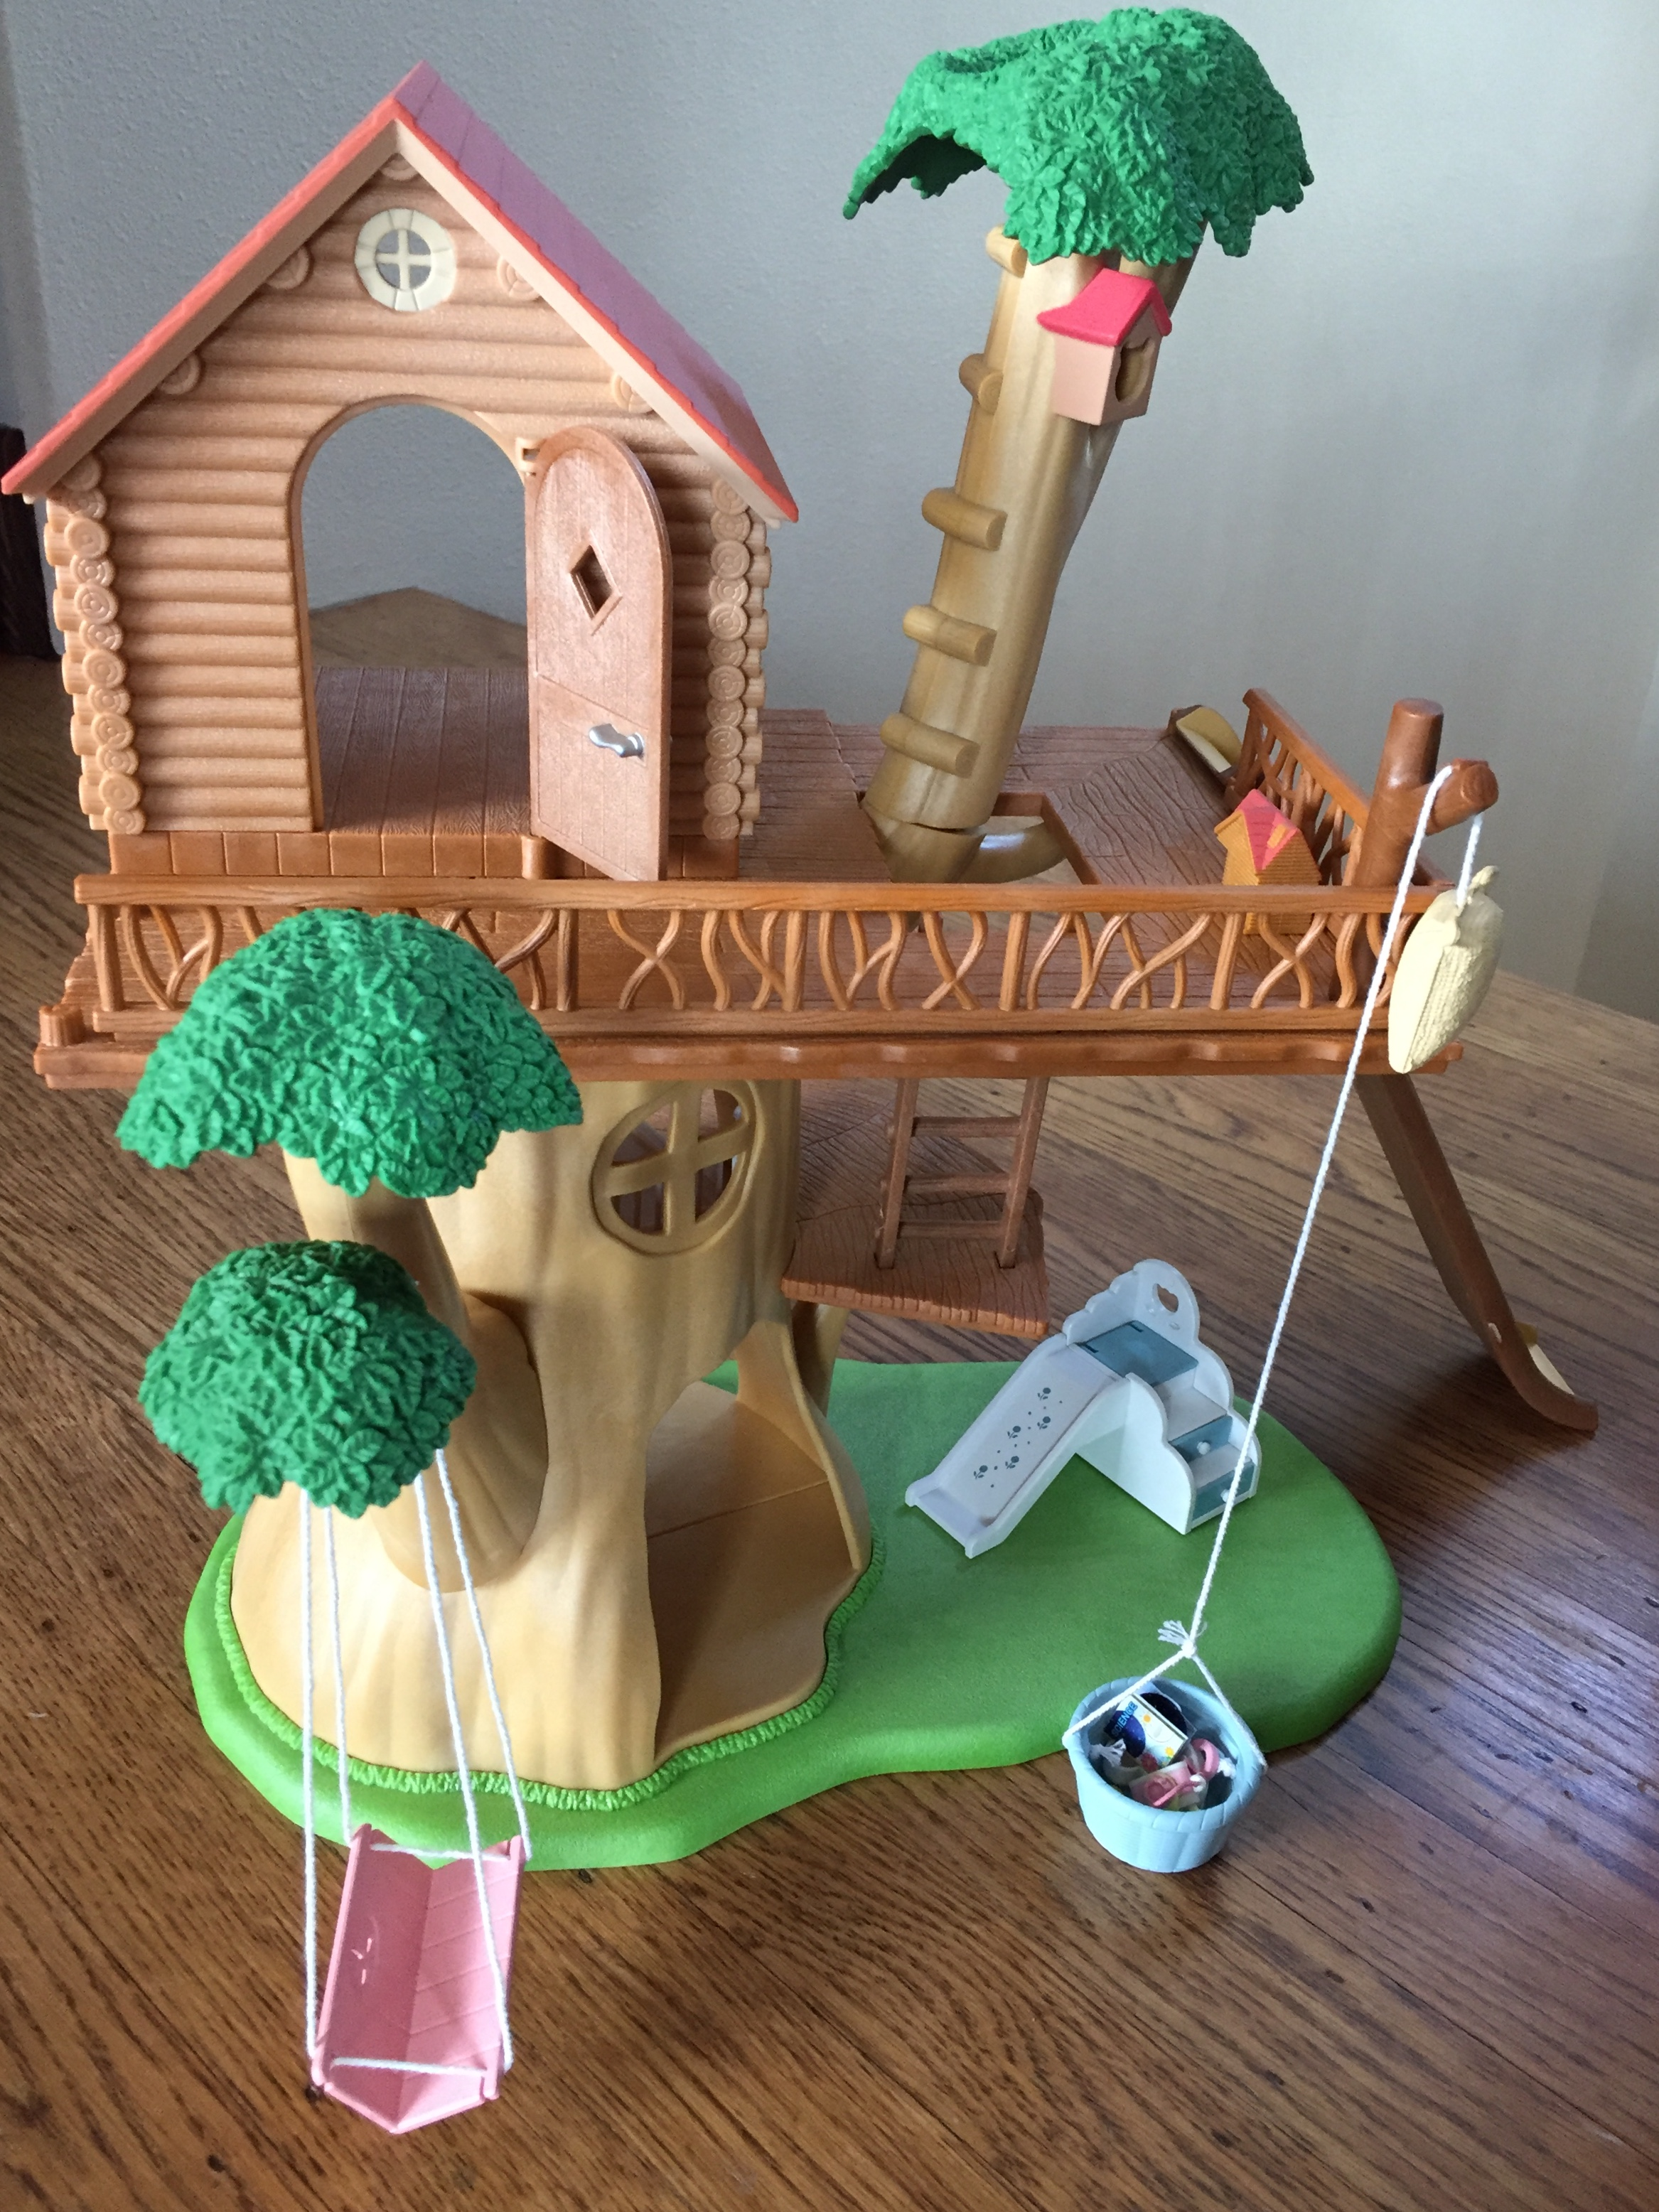 Calico Critter Adventure Tree House set up swing slide bucket with pulley